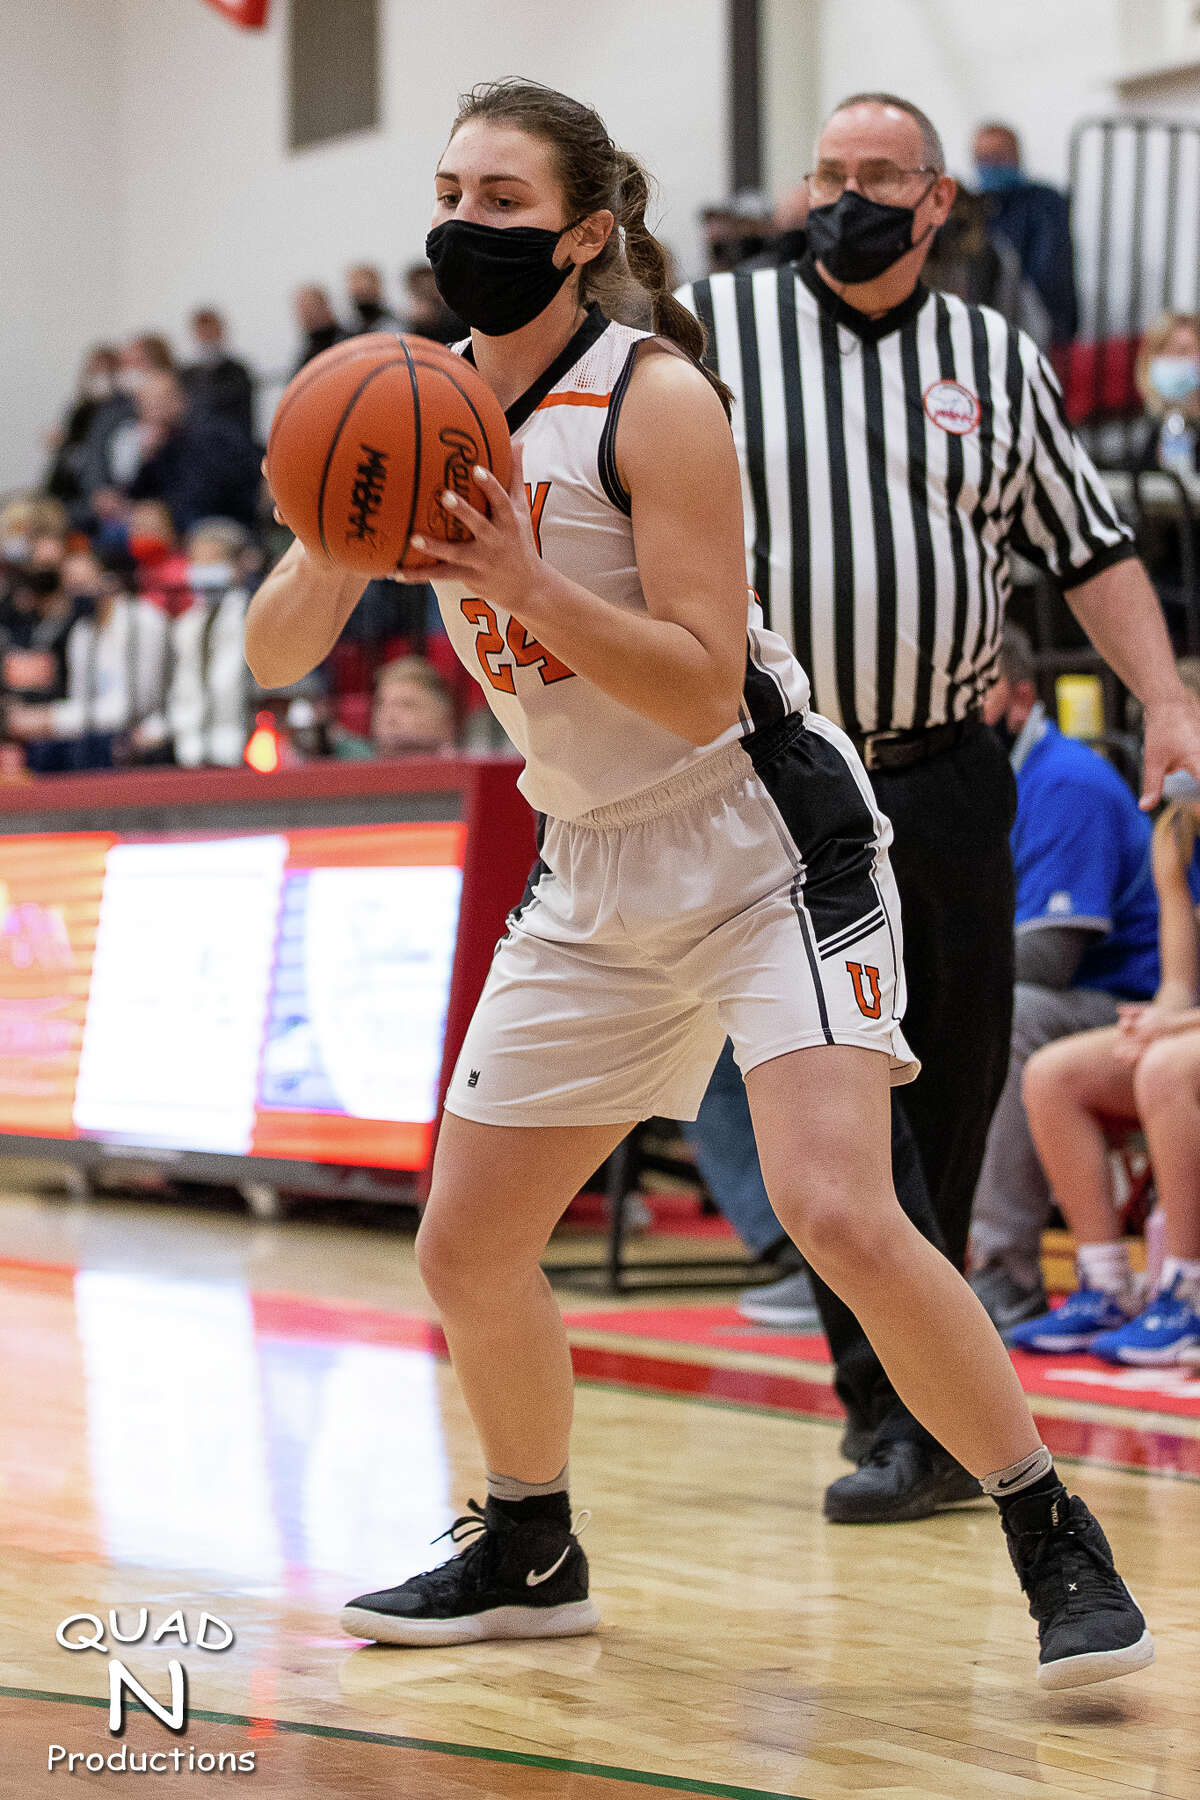 The Ubly girls basketball team's quest for a state championship ended with a loss to Saginaw Nouvel in the regional semifinals at Mount Pleasant Sacred Heart on Monday evening.